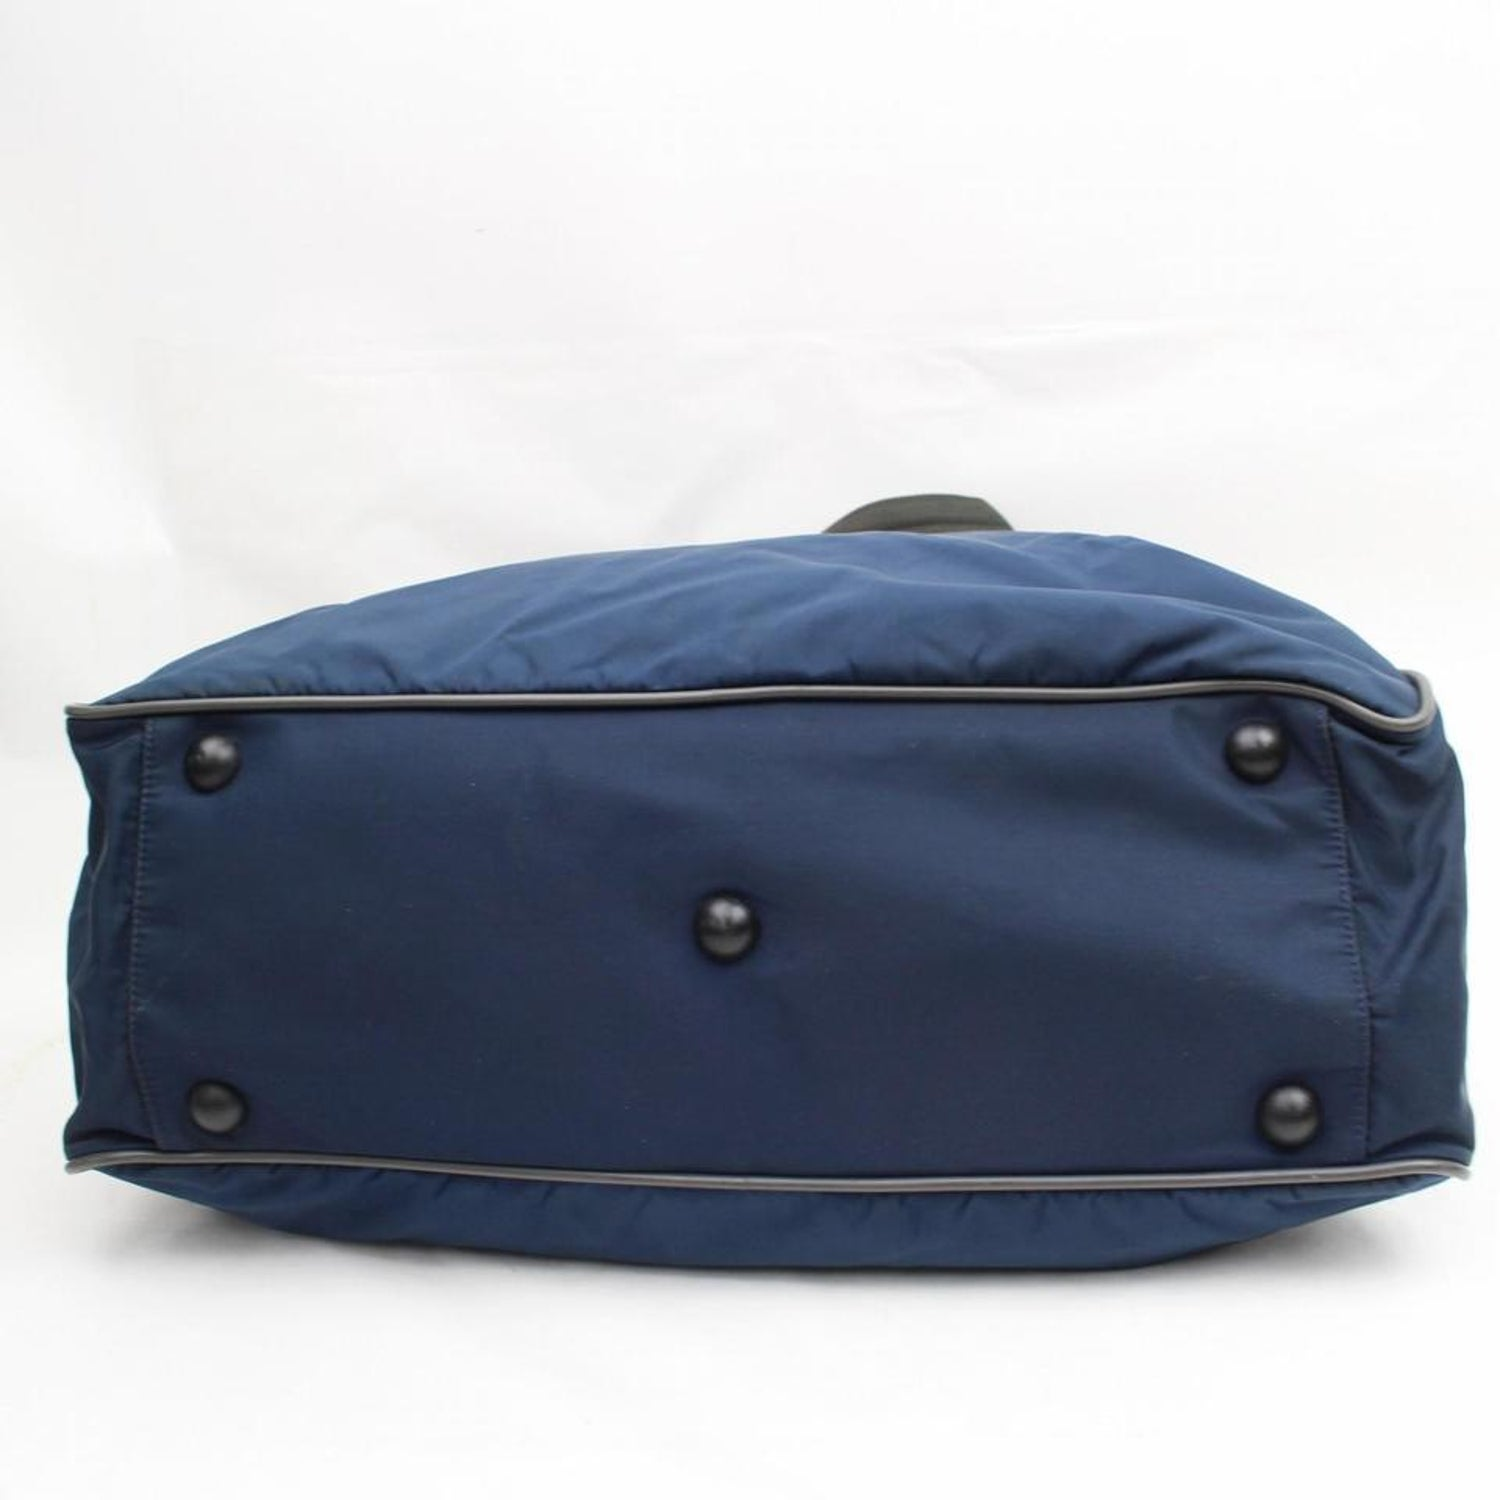 0e7a66c2afa0e1 Prada Navy Tessuto Sports Tote 868071 Blue Nylon Weekend/Travel Bag For Sale  at 1stdibs